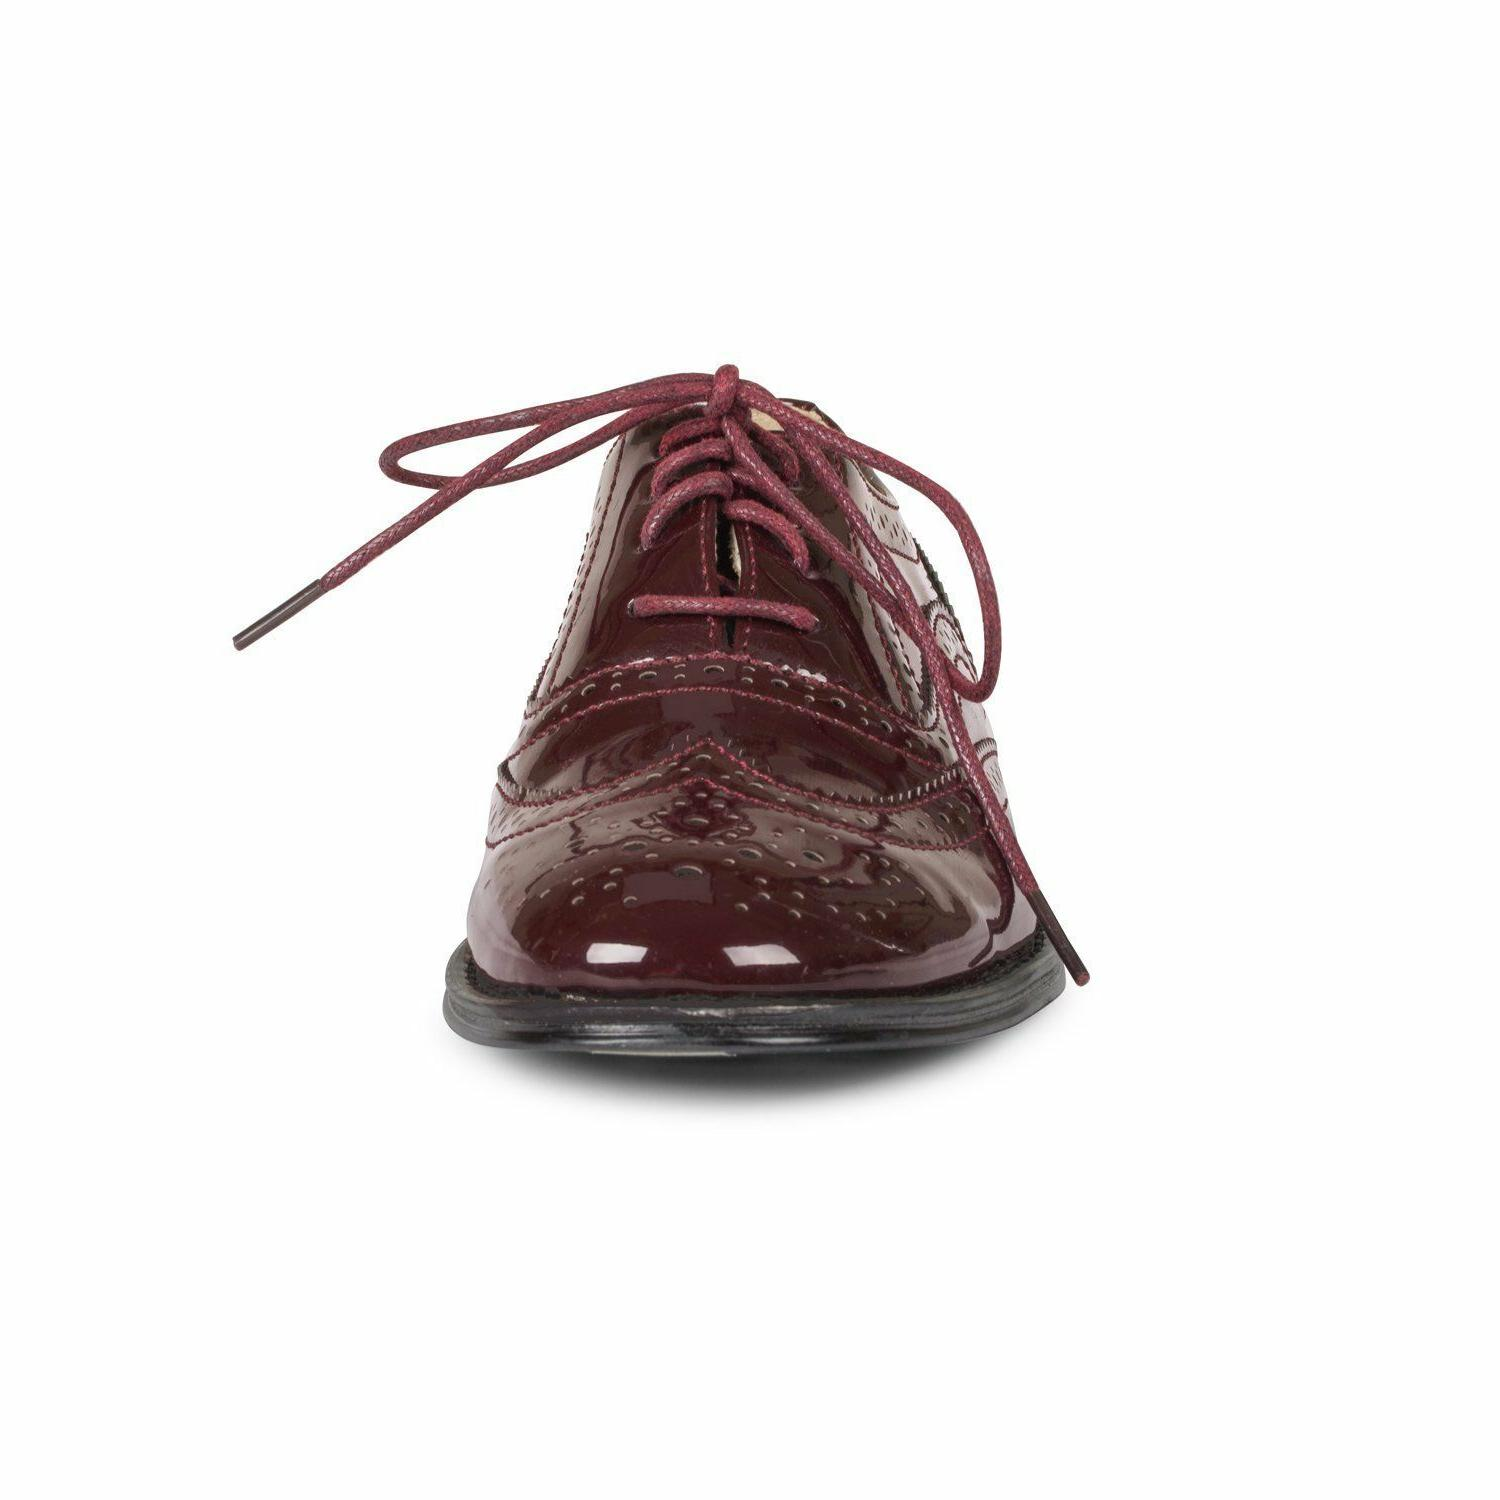 Wanted Women's Patent Oxford Size